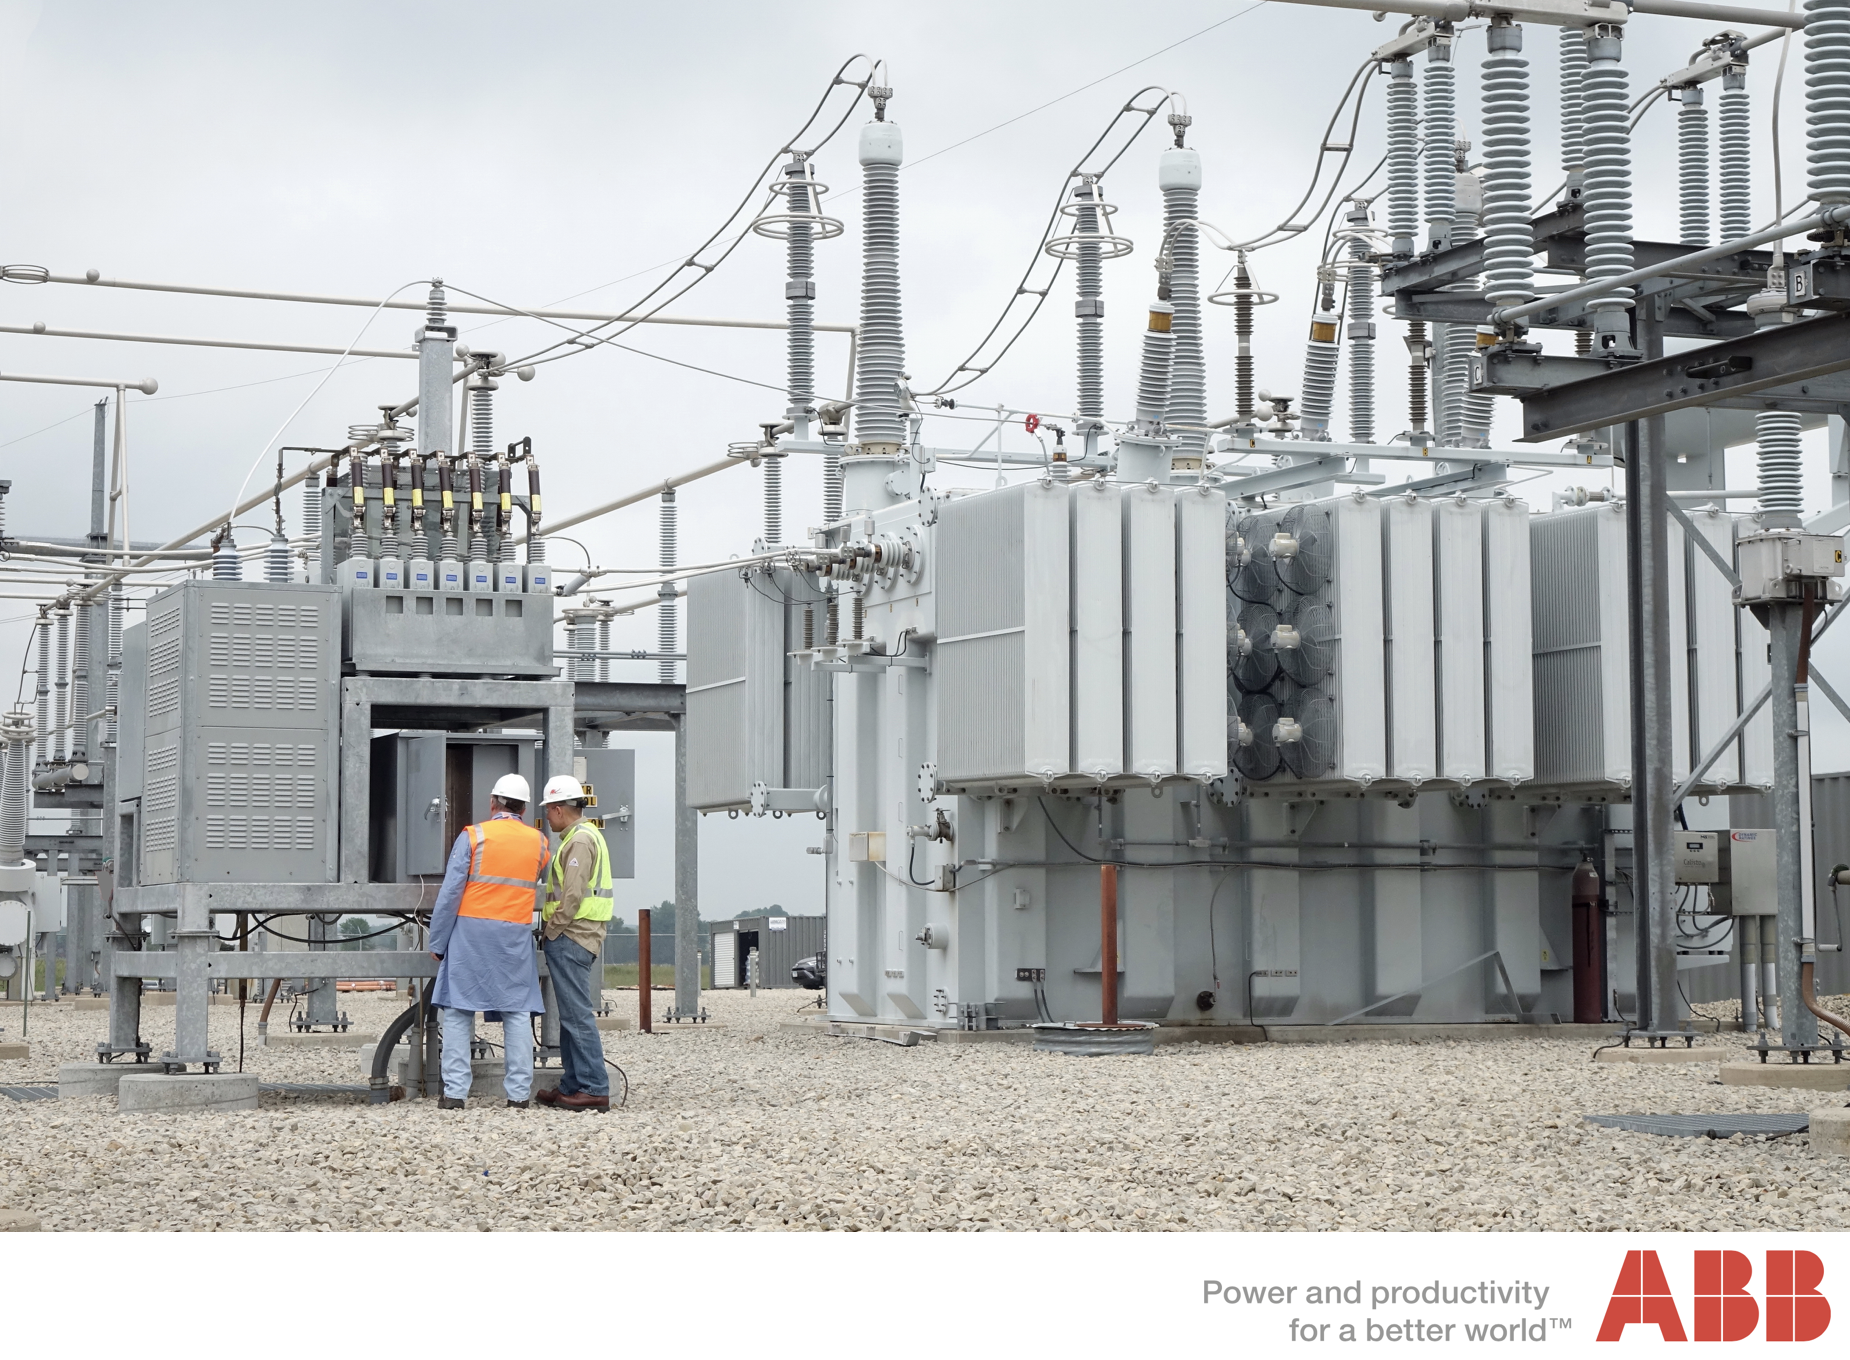 SolidGround™ protecting a 300 MVA 345kV / 138kV Transformer - Automatically triggered into Blocking Mode more than   30 times since installation, successfully blocking GIC and preventing Harmonics from Solar Storms.